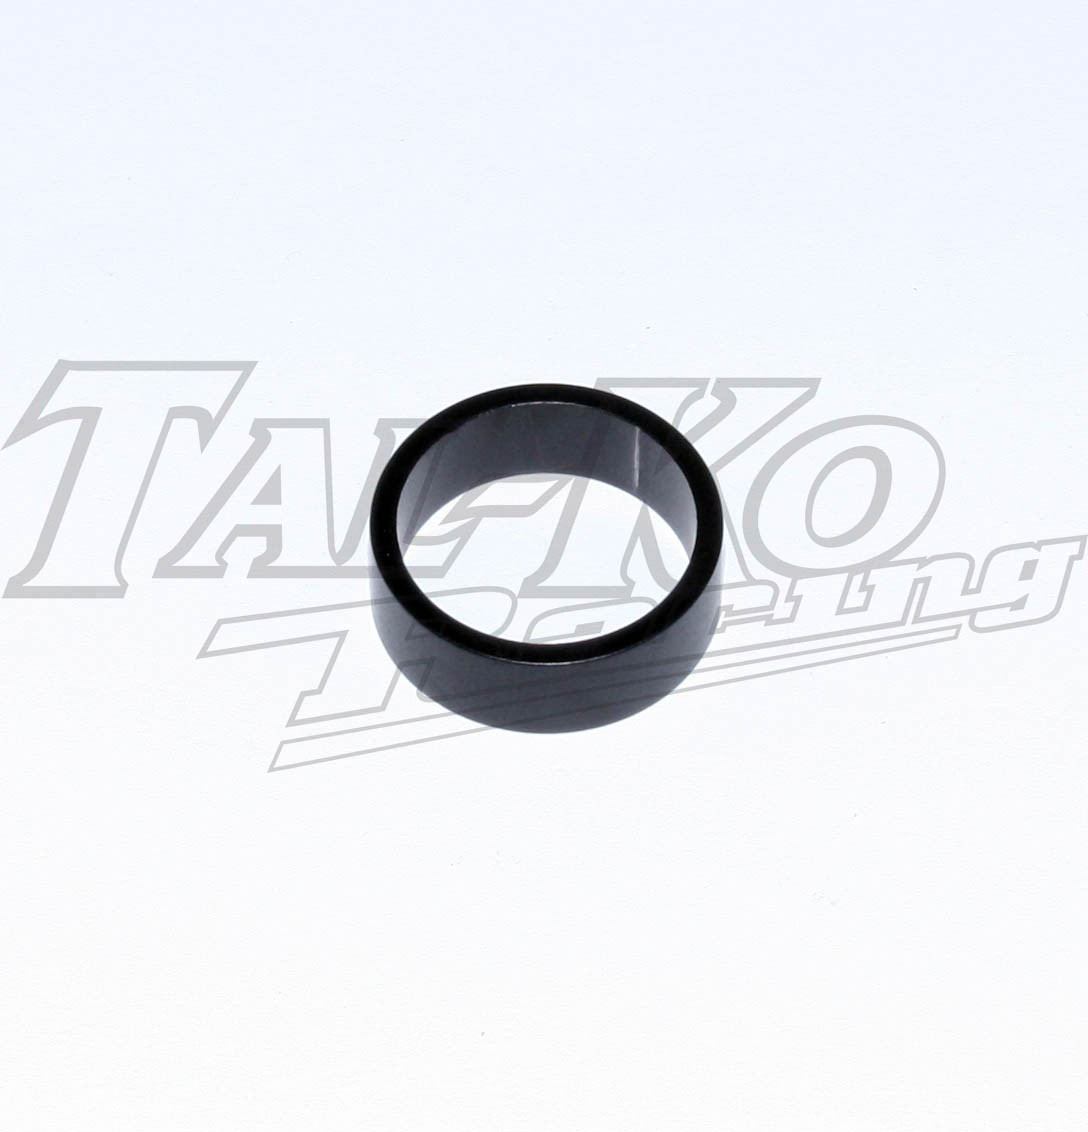 R/R STUB AXLE WHEEL SPACER D25 x 10 BLACK